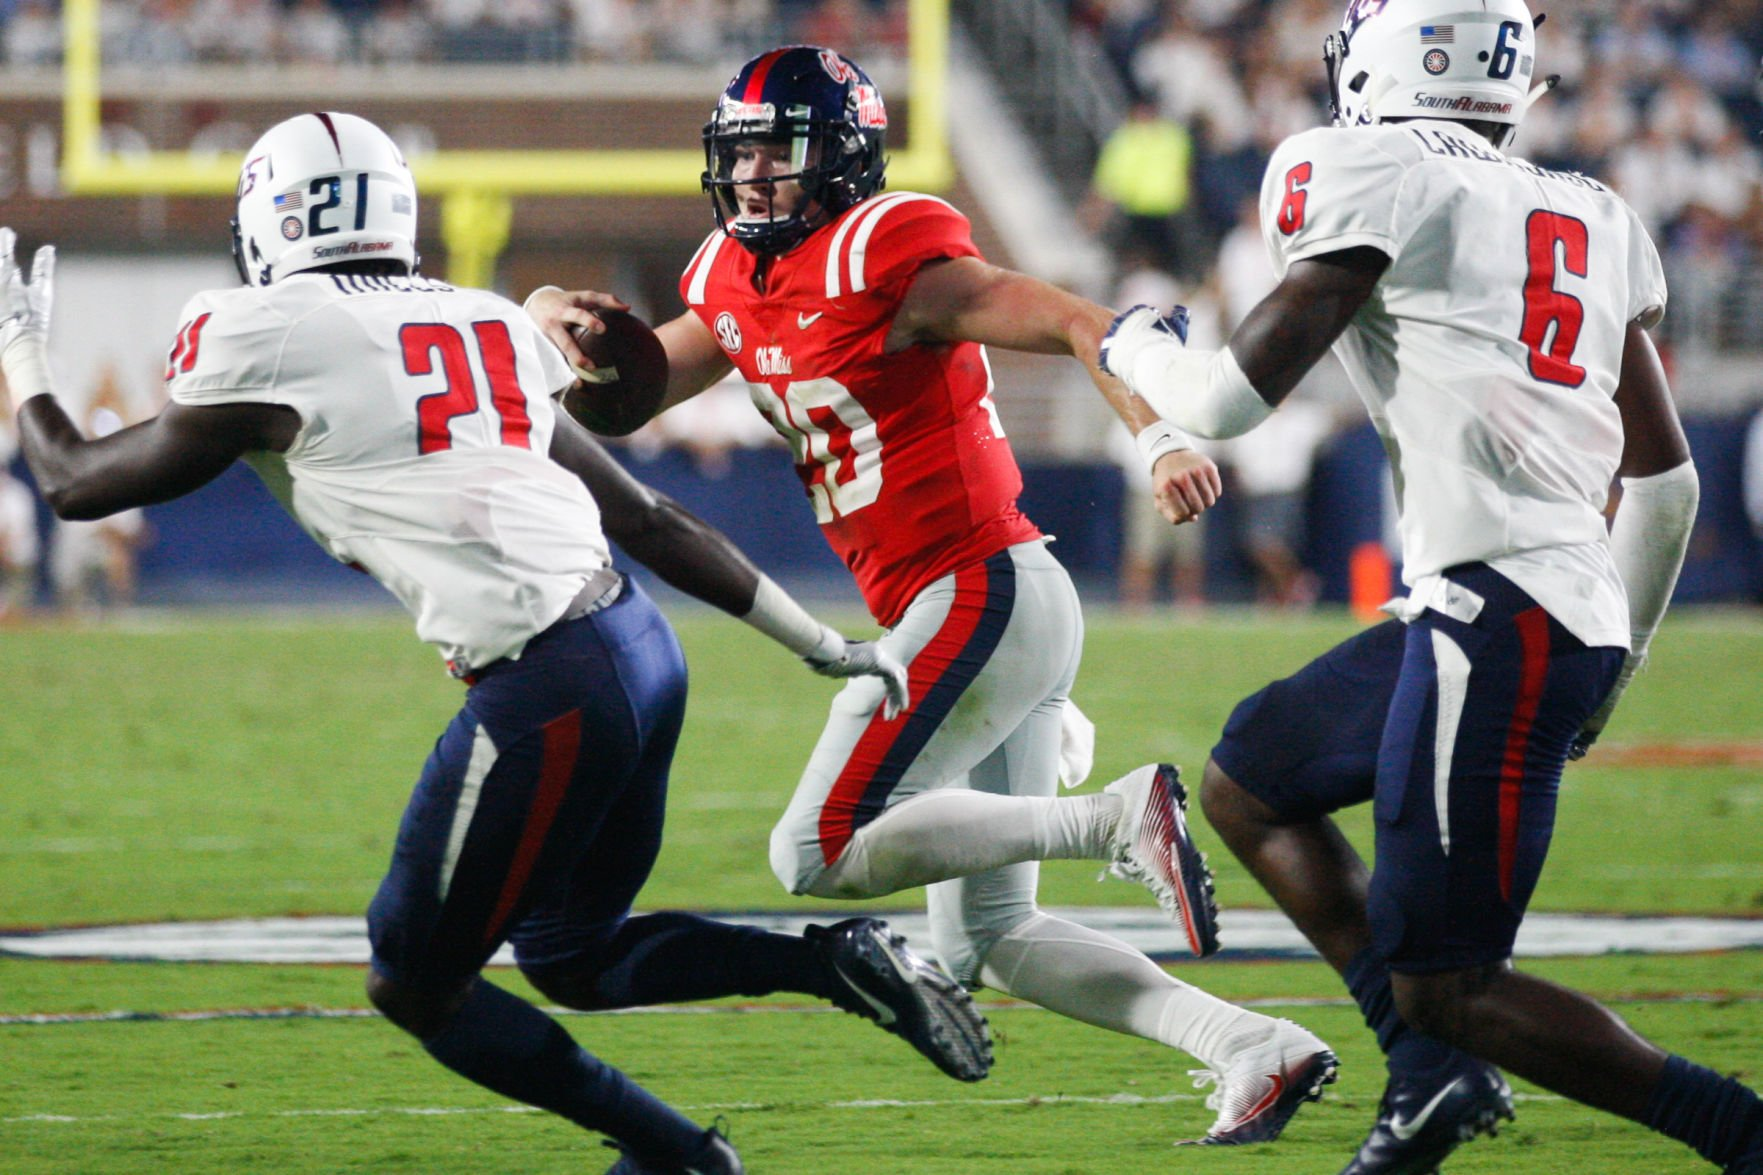 Shea Patterson discusses season-opening performance — RGTV